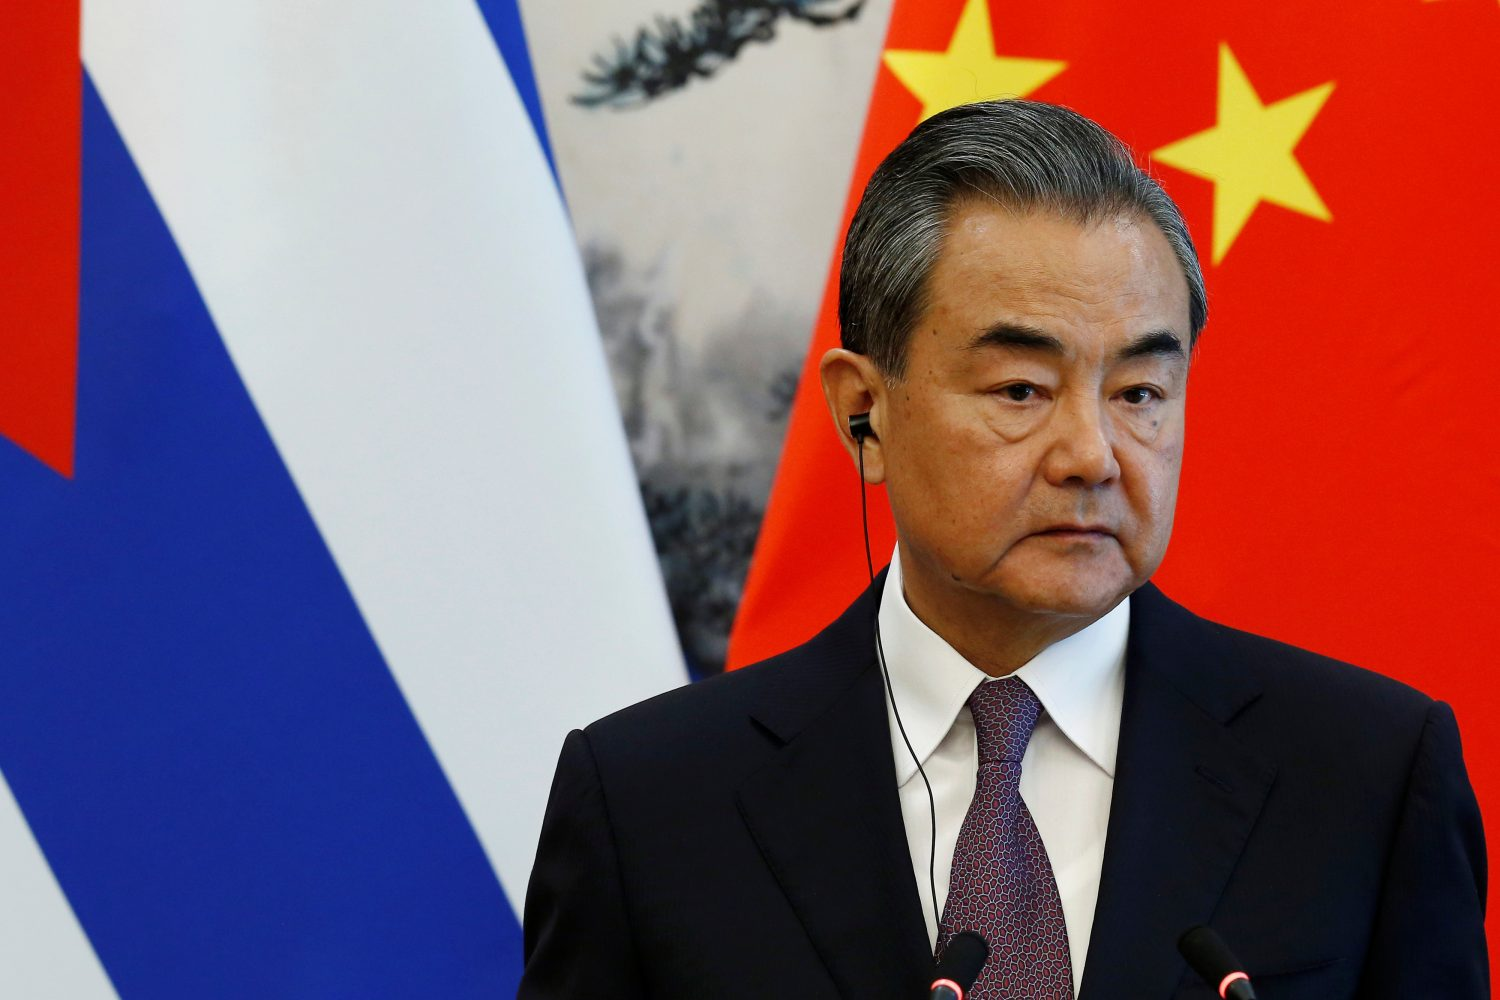 FILE PHOTO: Chinese Foreign Minister Wang Yi attends a news conference with Cuban Foreign Minister Bruno Rodriguez (not pictured) at Diaoyutai state guesthouse in Beijing, China May 29, 2019. REUTERS/Florence Lo